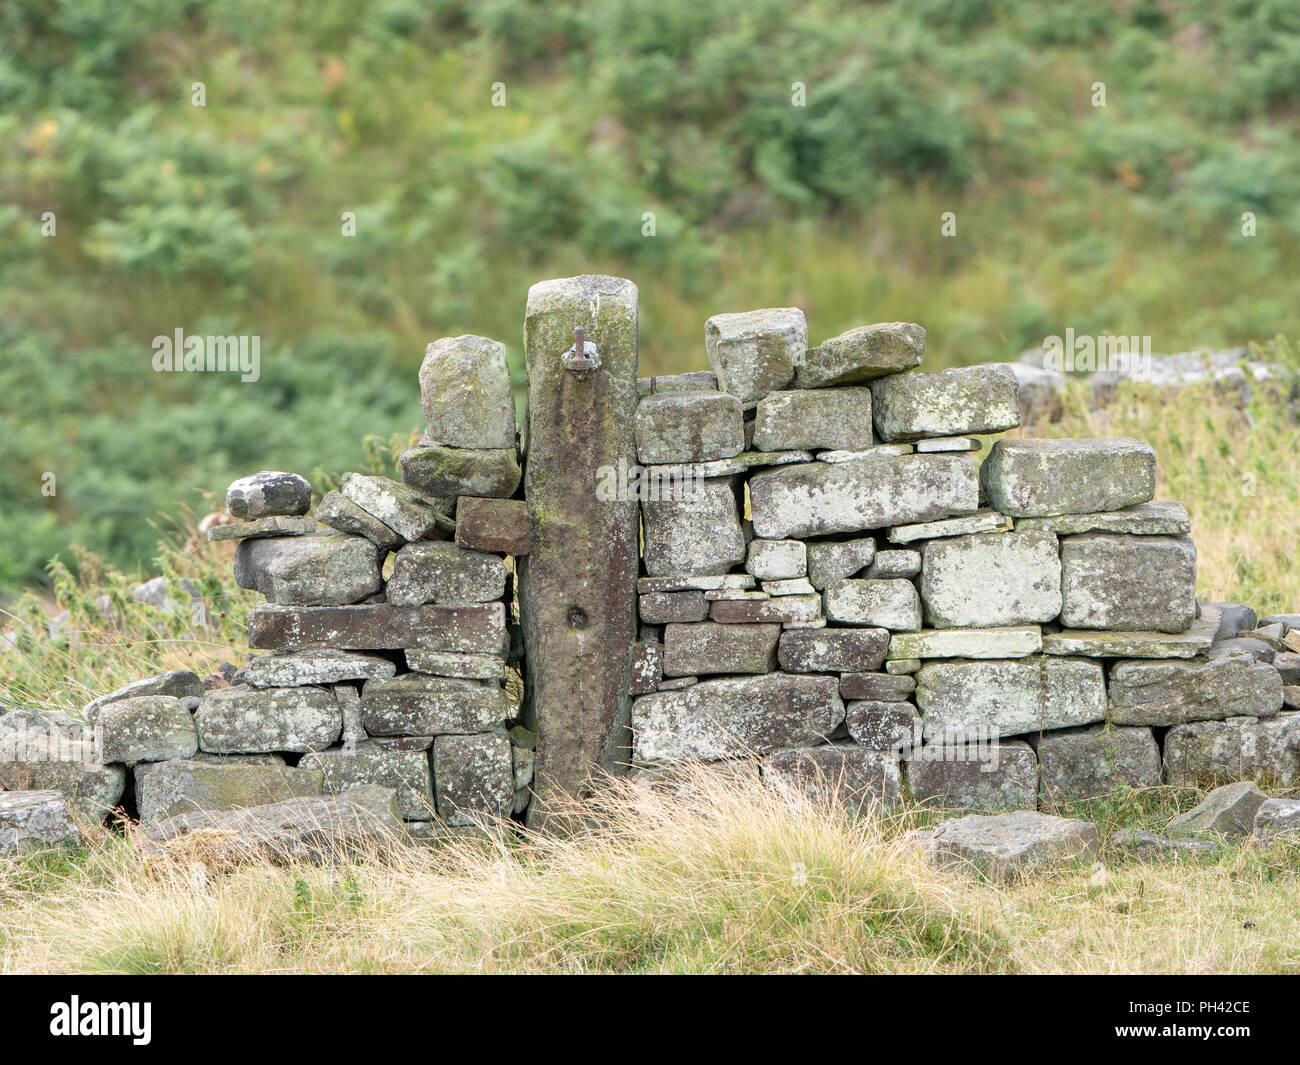 Stone gatepost in dry stone wall on the Bronté Way in West Yorkshire, near Haworth. - Stock Image